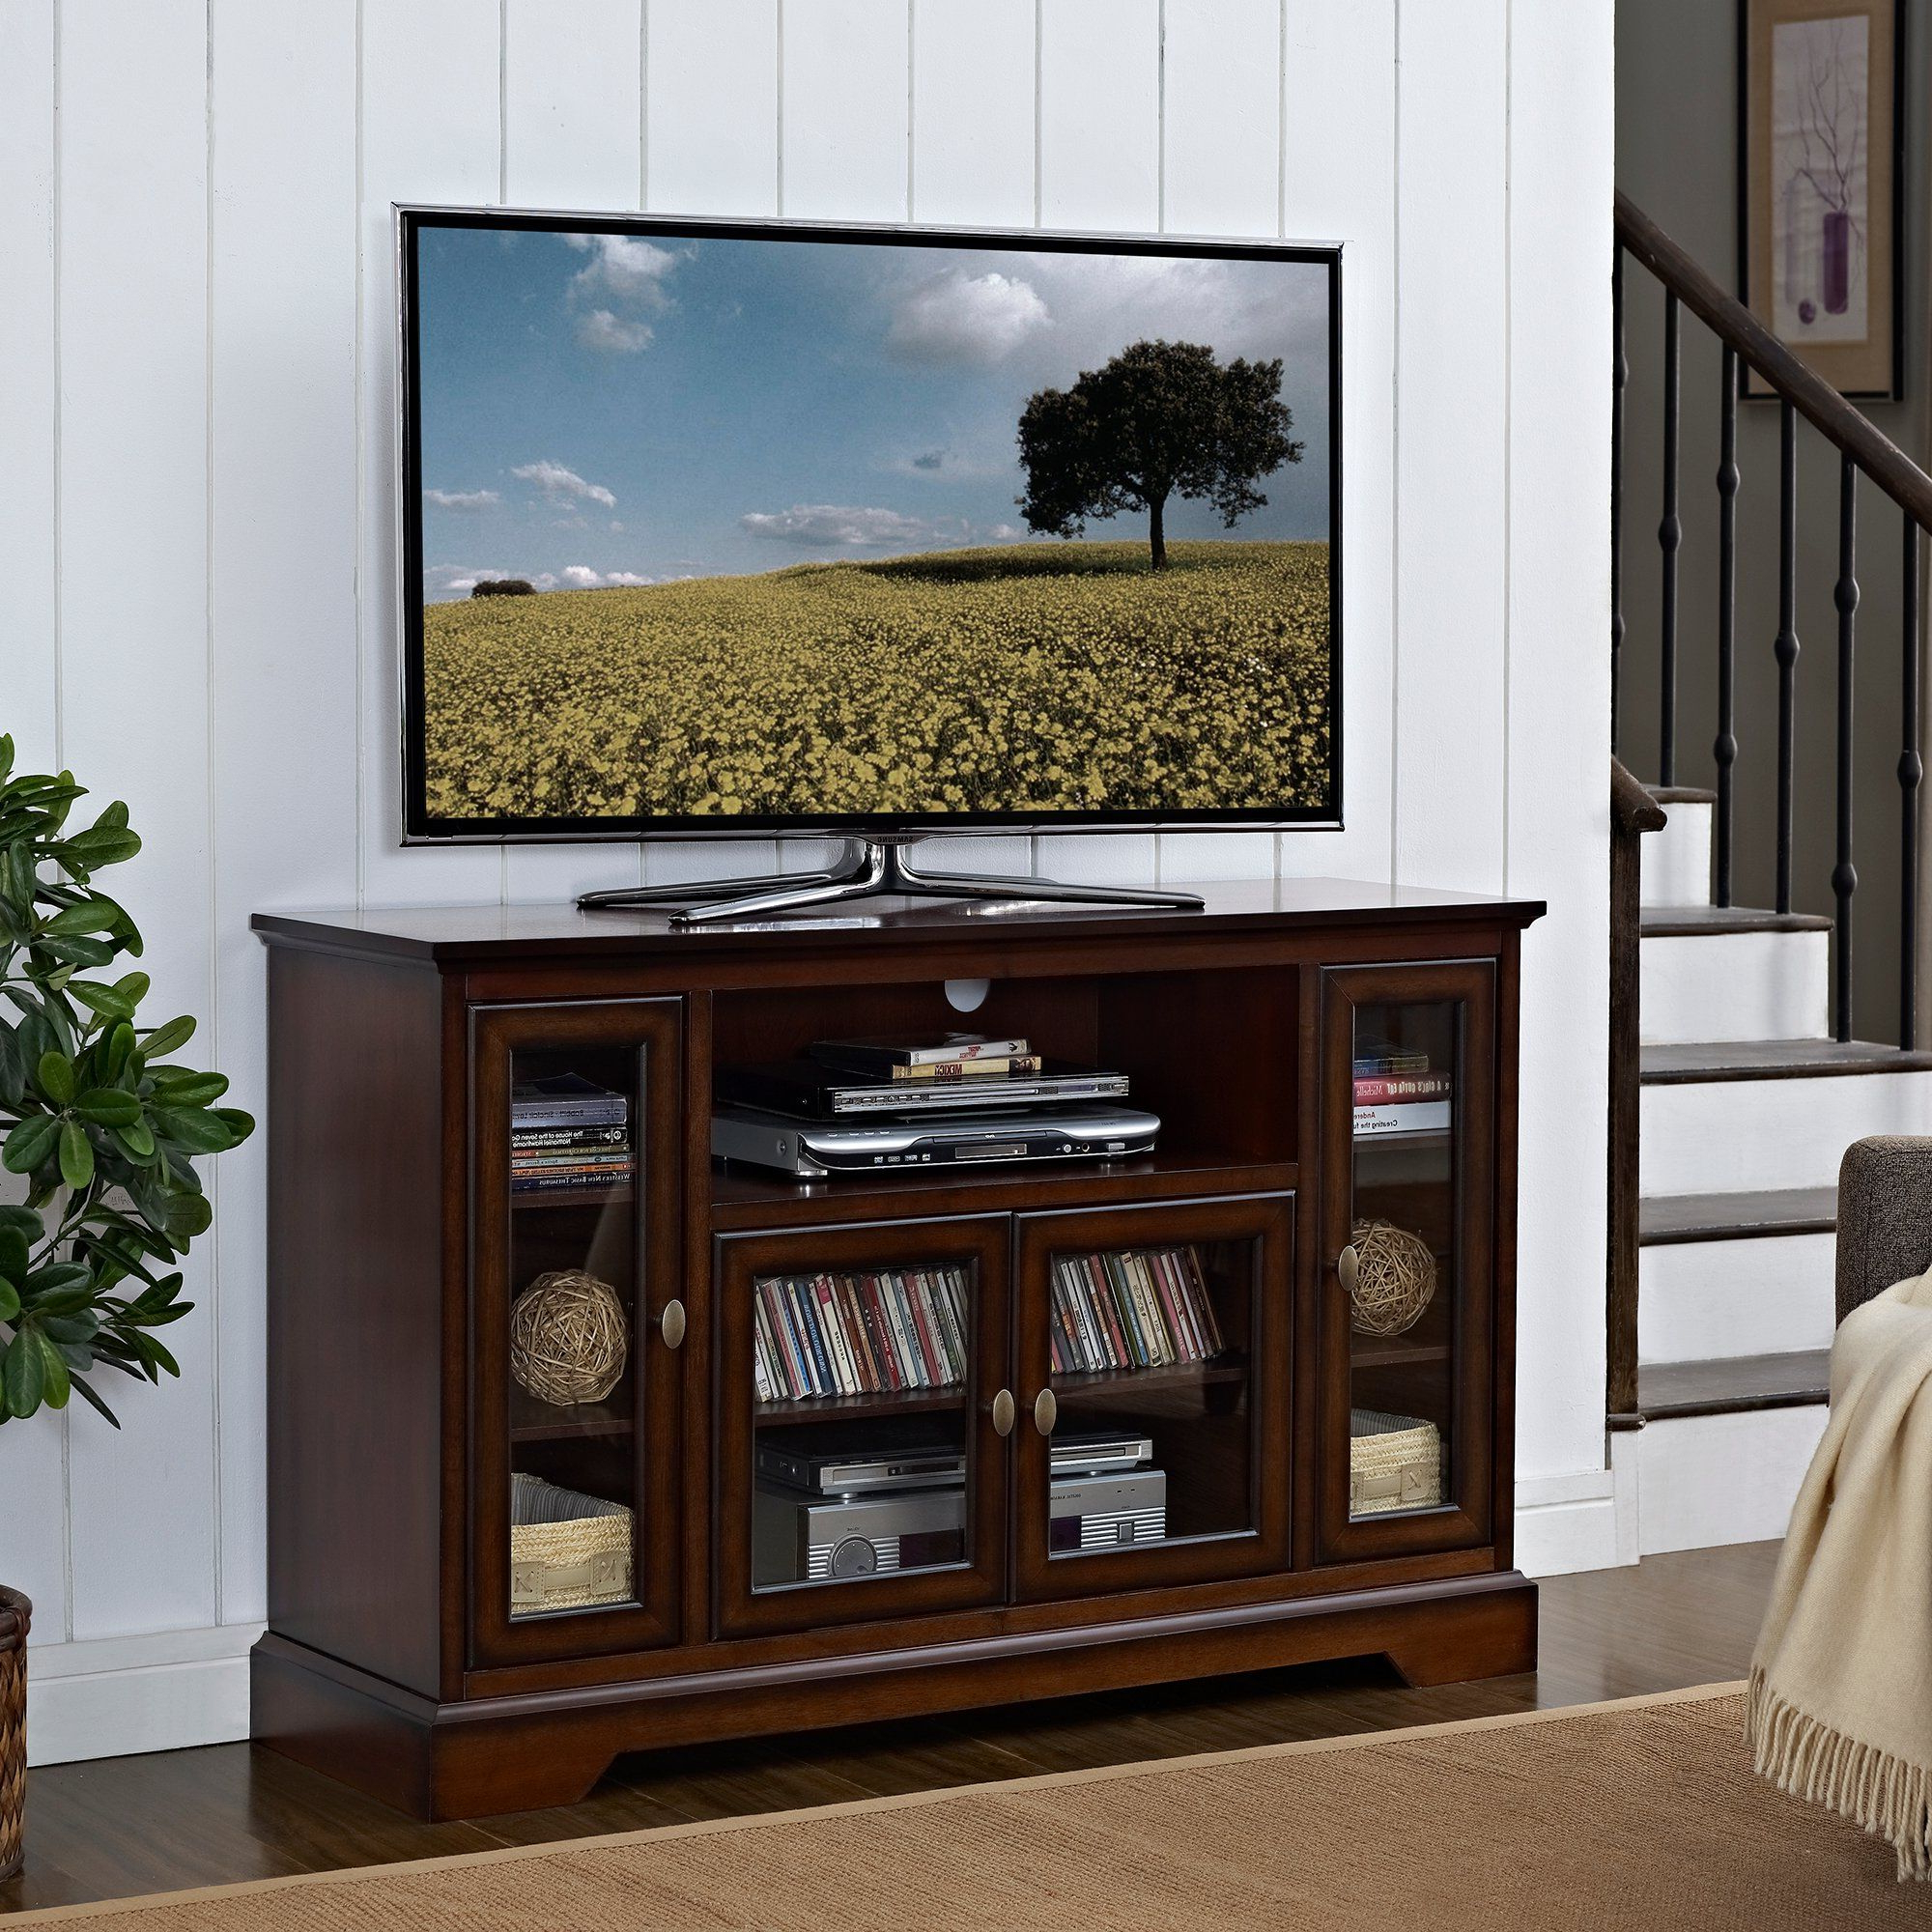 Rustic Brown Wood Tv Stand (52 Inch)   Highboy Tv Stand For Modern Black Floor Glass Tv Stands For Tvs Up To 70 Inch (View 8 of 20)